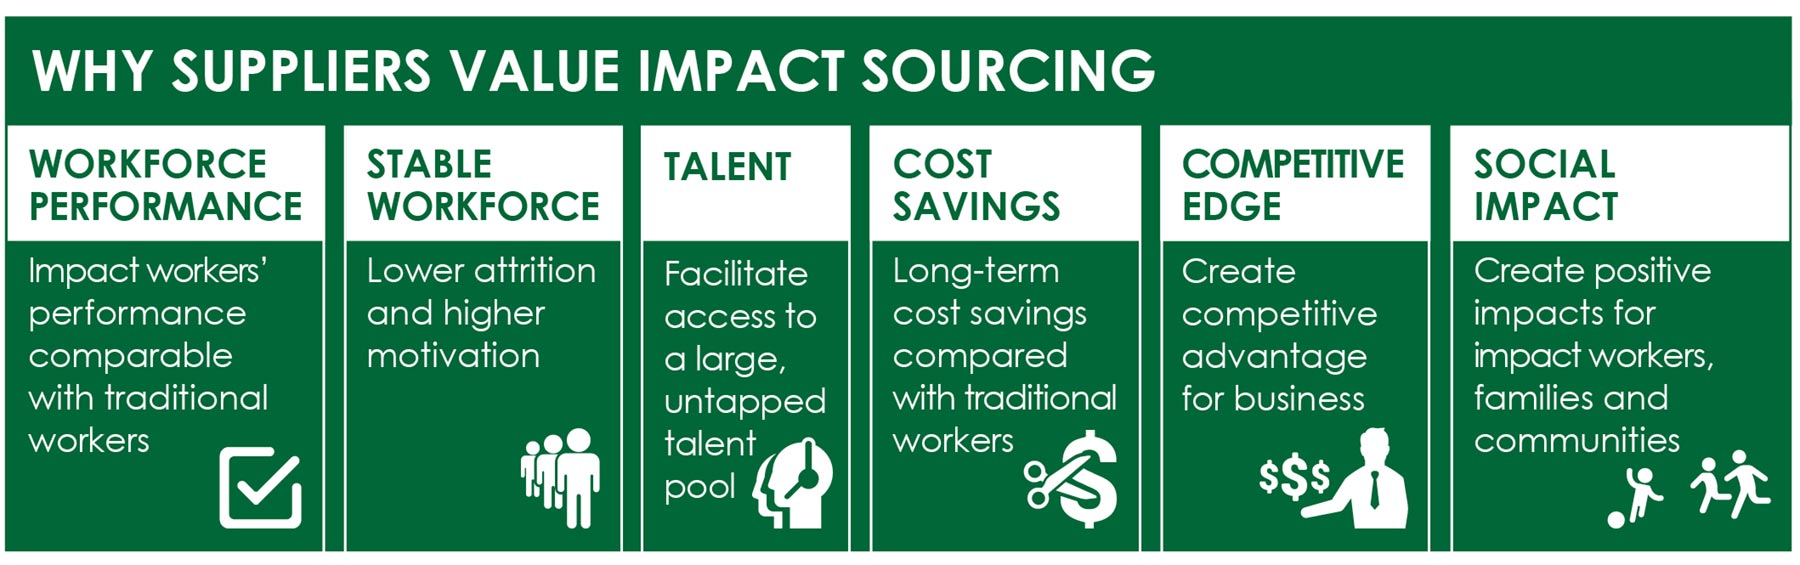 Impact sourcing infographic, part 3